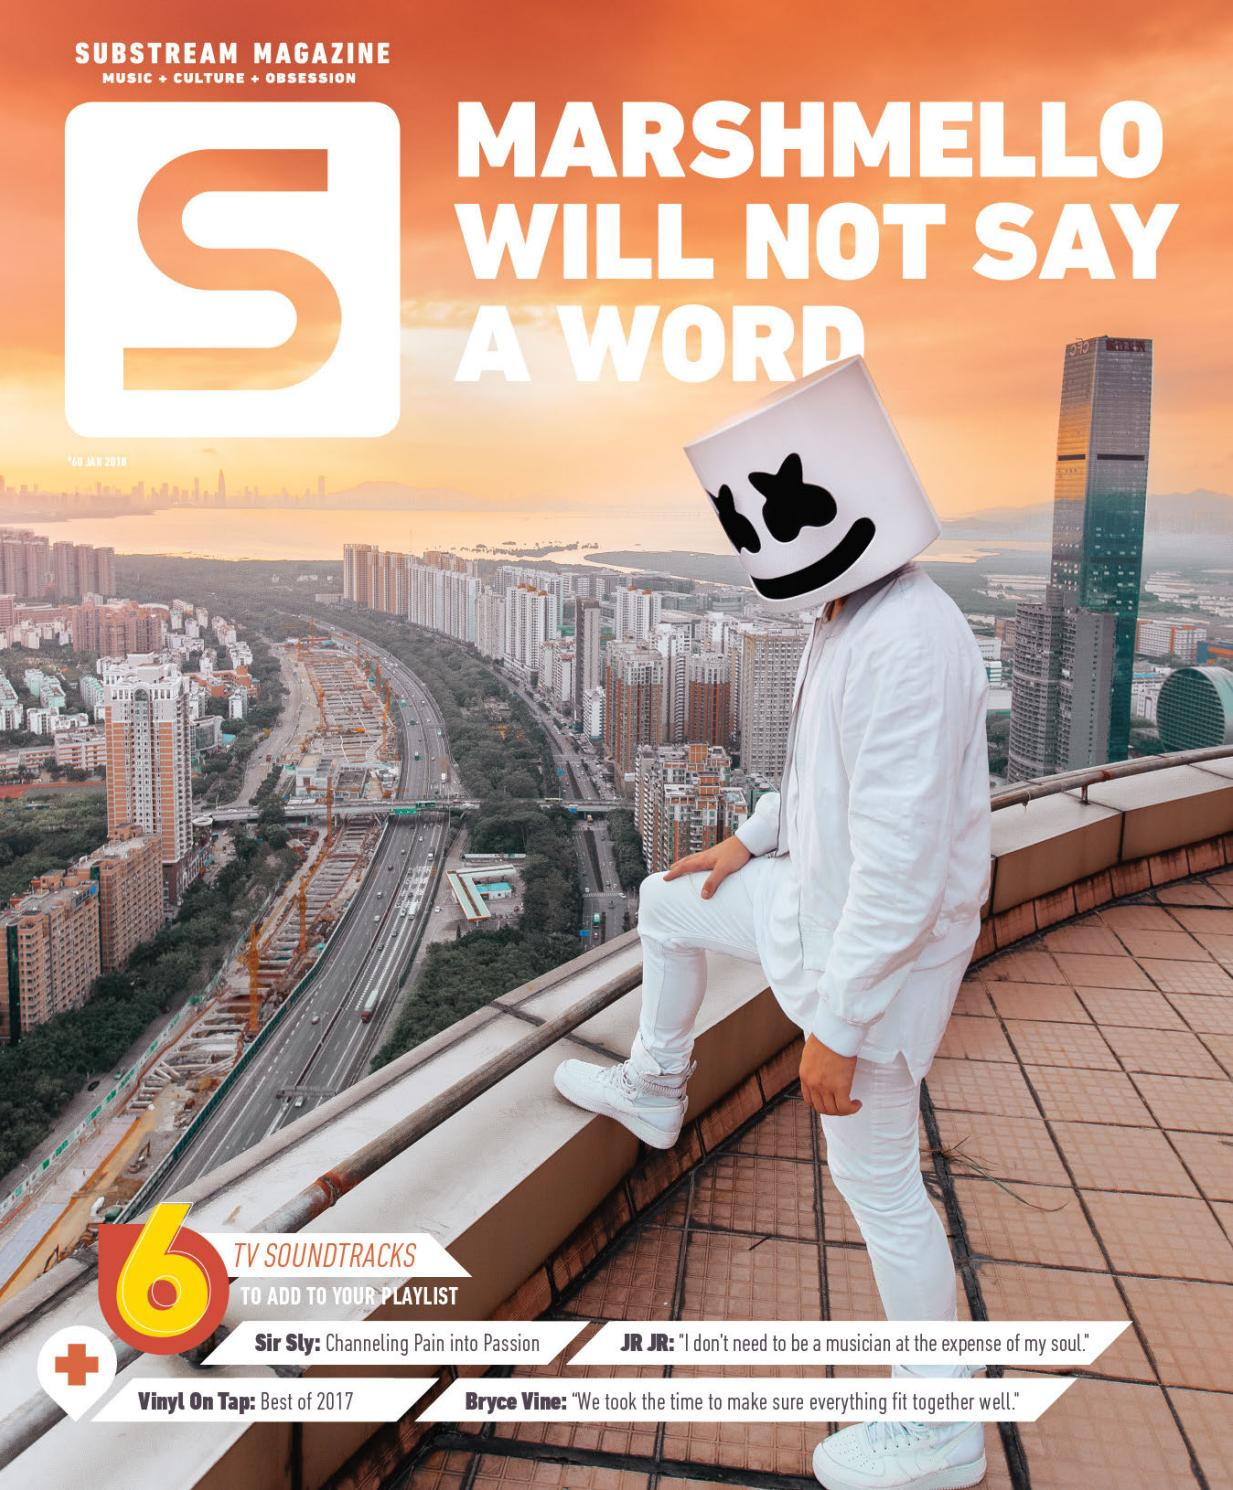 Substream Issue 60 Featuring Marshmello by Substream Magazine - issuu 245a6fe0a1